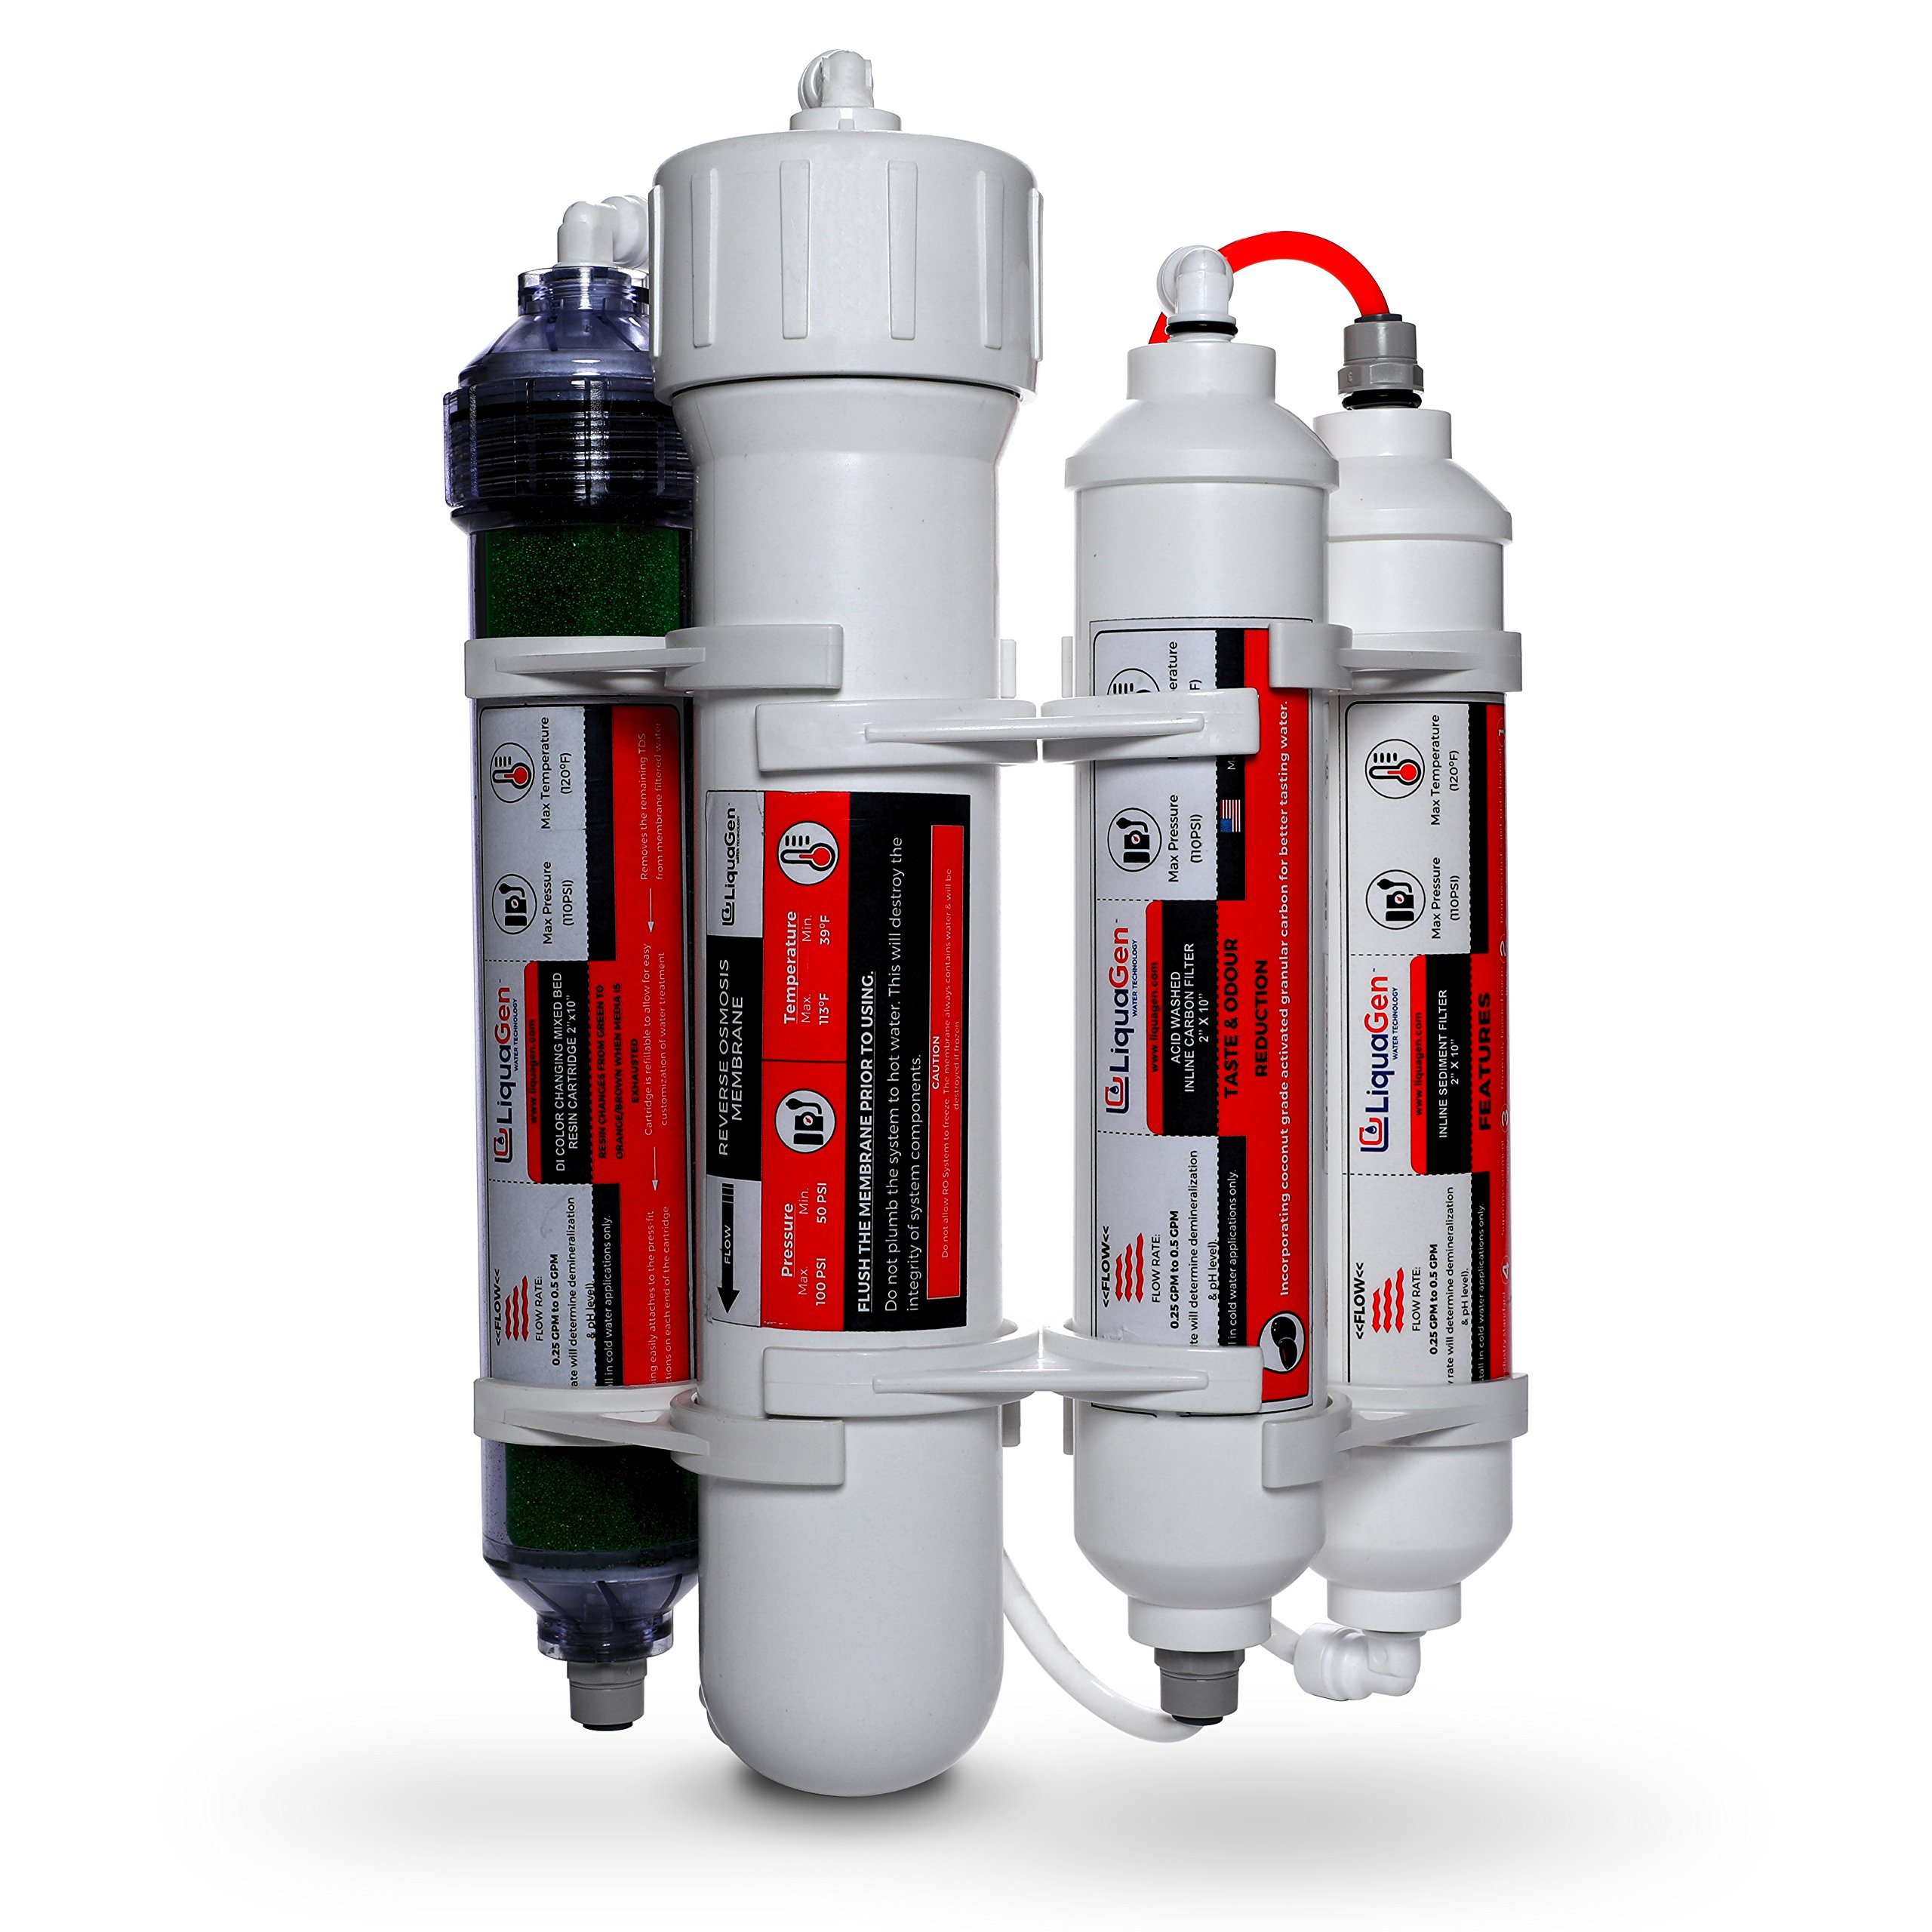 LiquaGen - 4 Stage Reverse Osmosis/Deionization (RO/DI) Portable Space Saver Water Filter System (75 GPD)